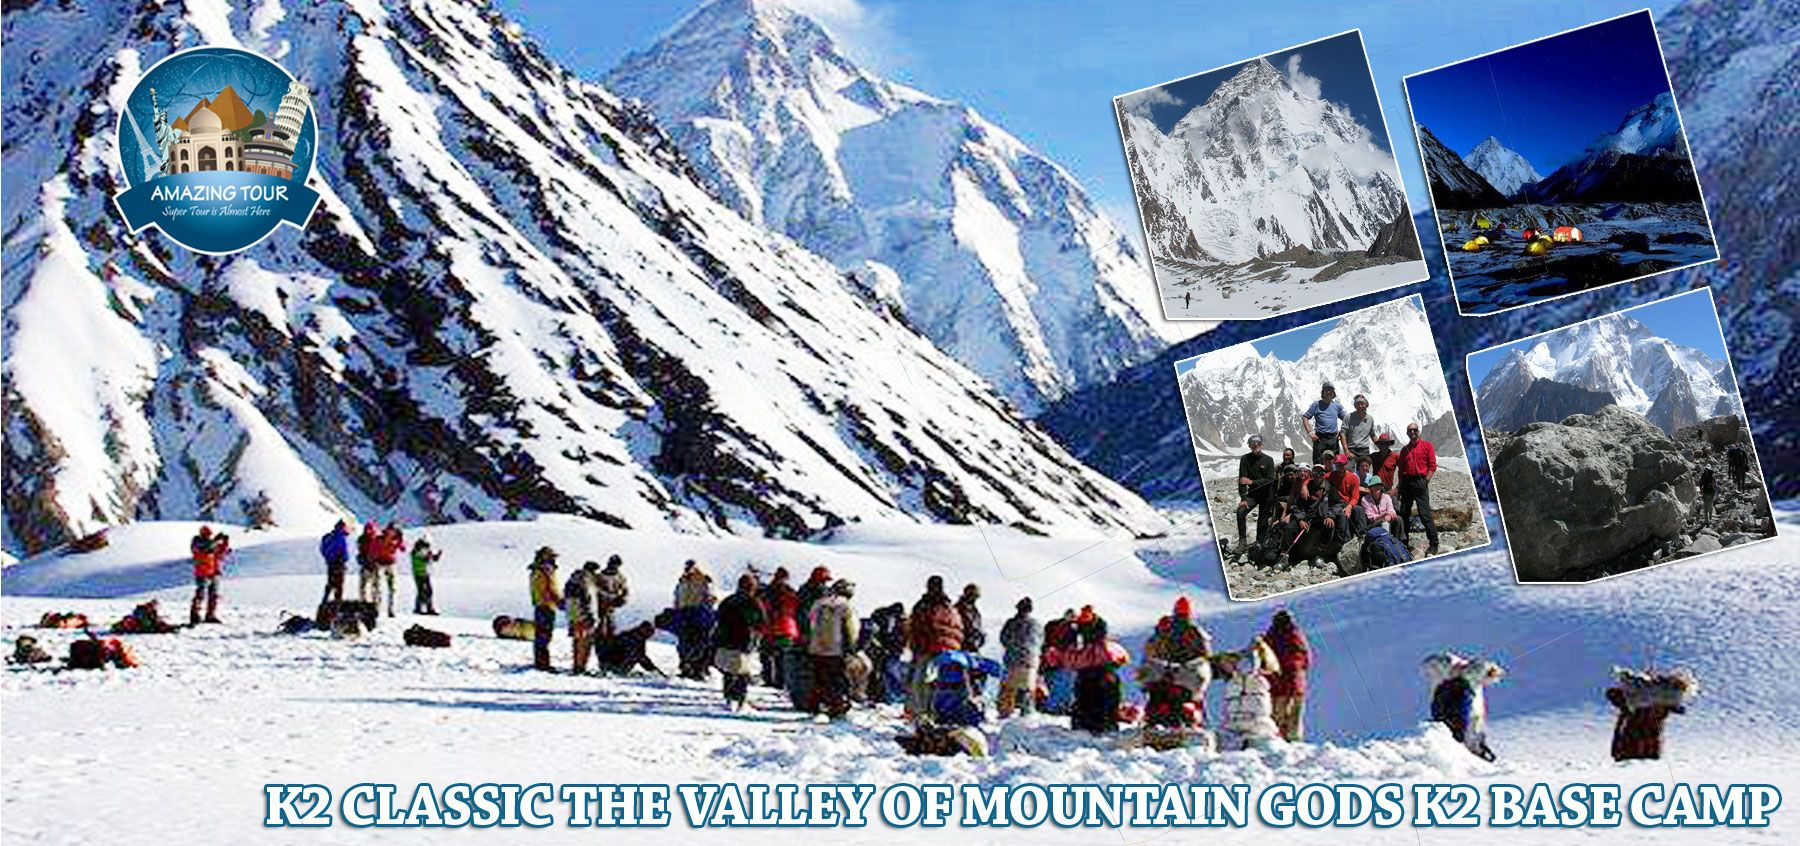 k2 classic the valley of mountain gods k2 base camp baltistan